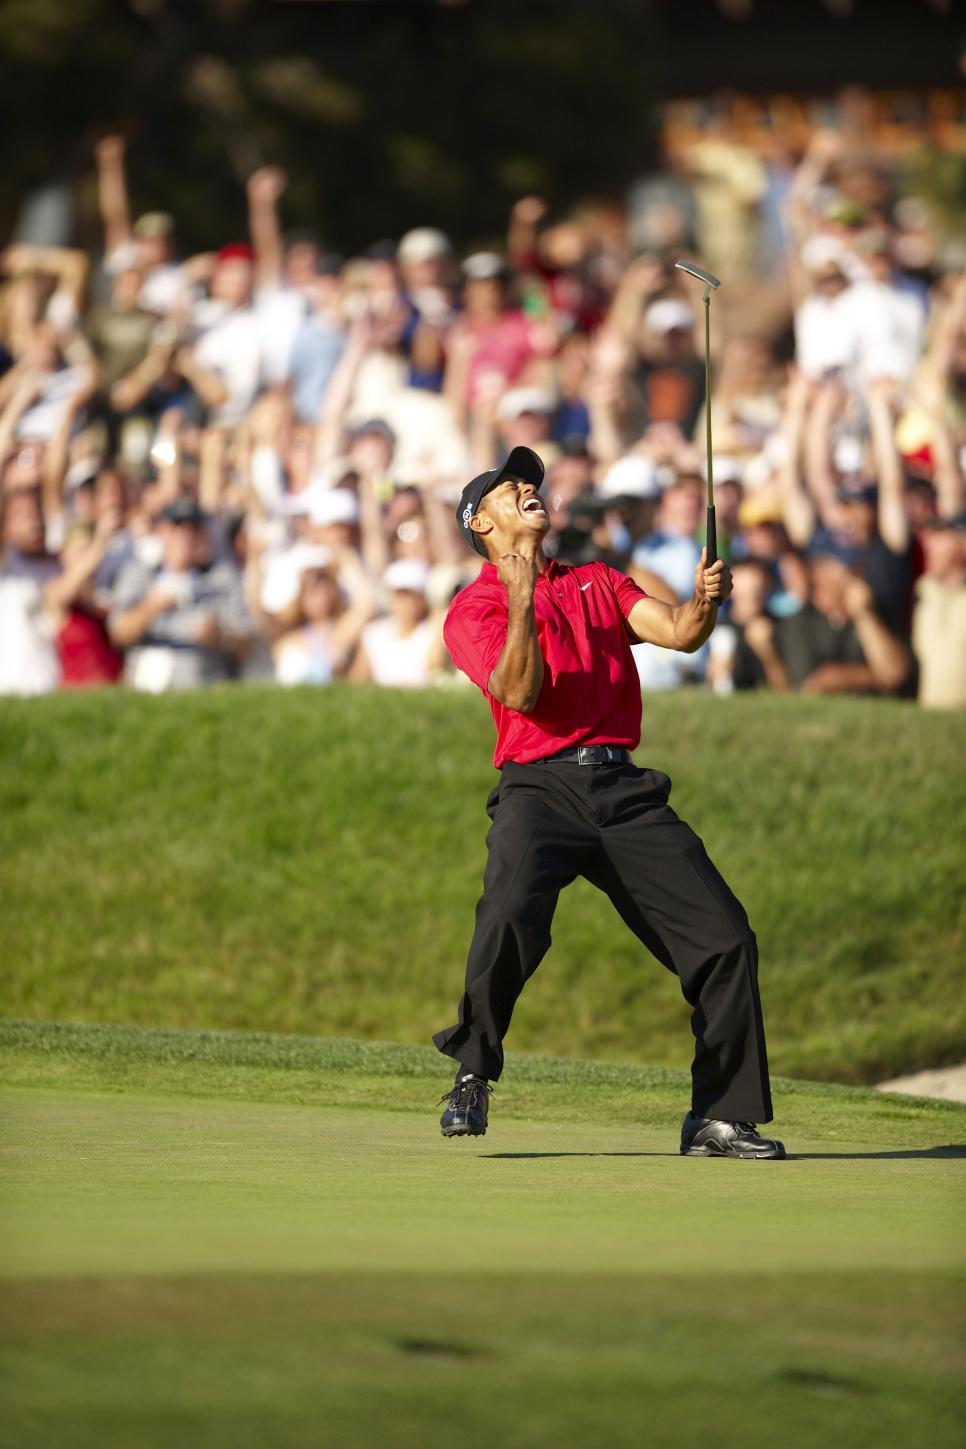 Tiger-Woods-2008-US-Open-Torrey-Pines.jpg